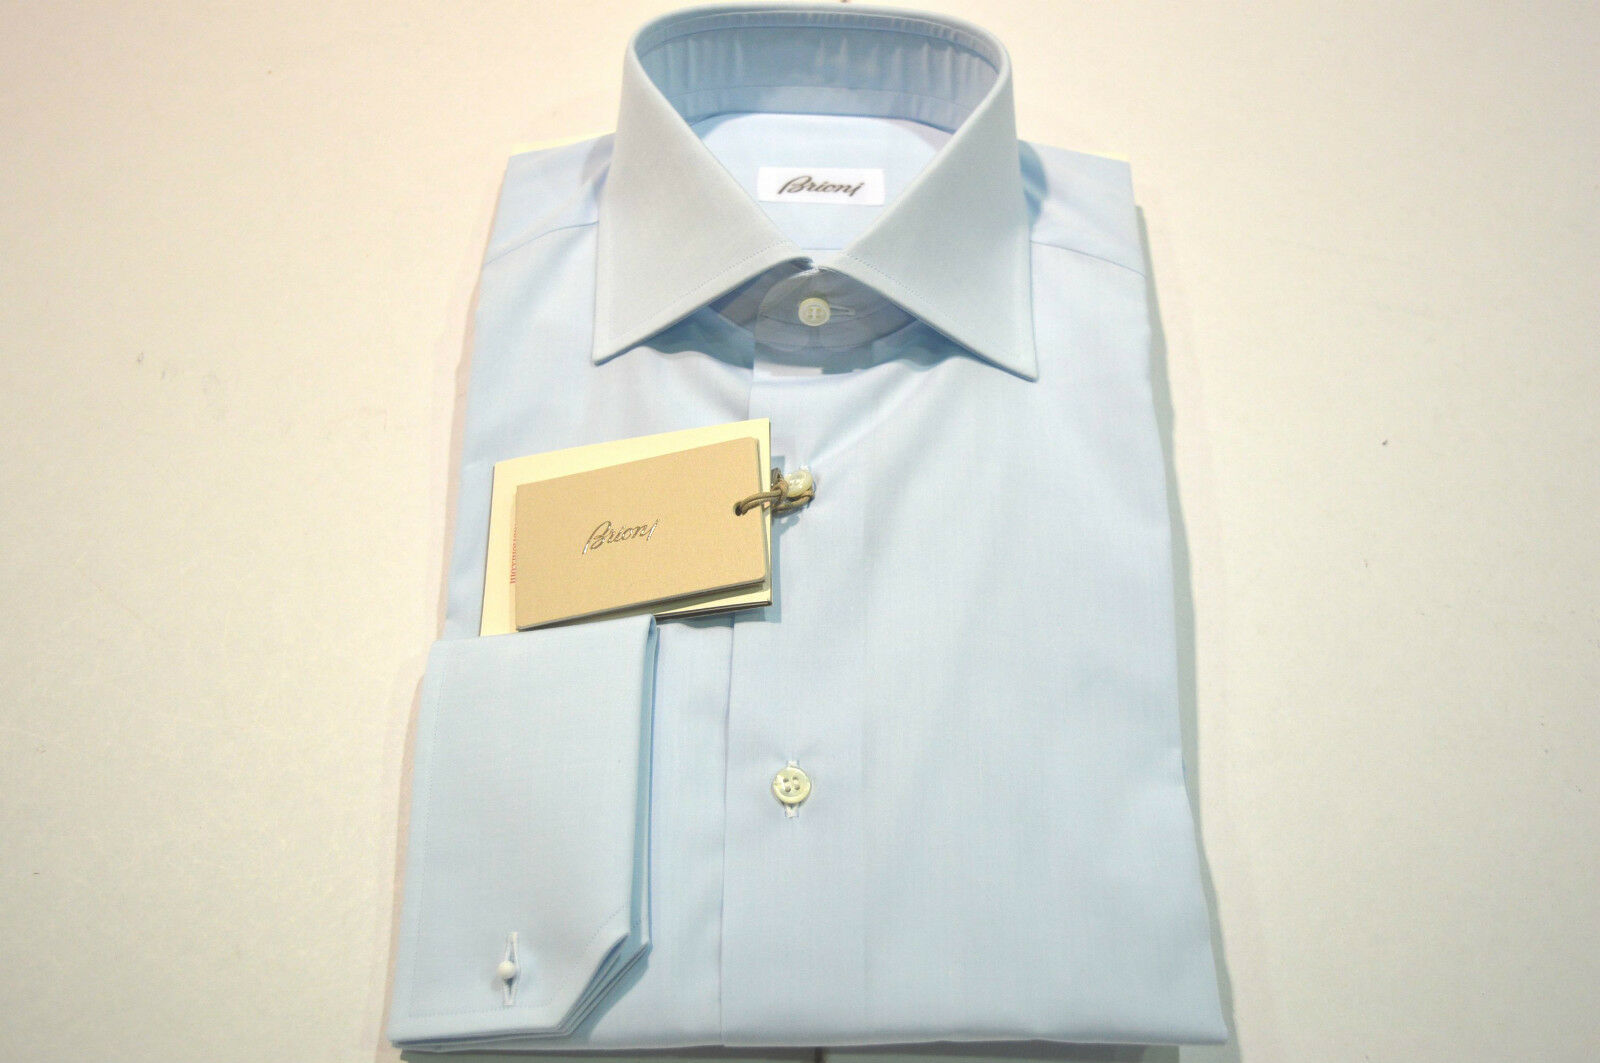 NEW  BRIONI Dress SHIRT 100% Cotton Size 15.75 Us 40 Eu    (Store Code AP7)